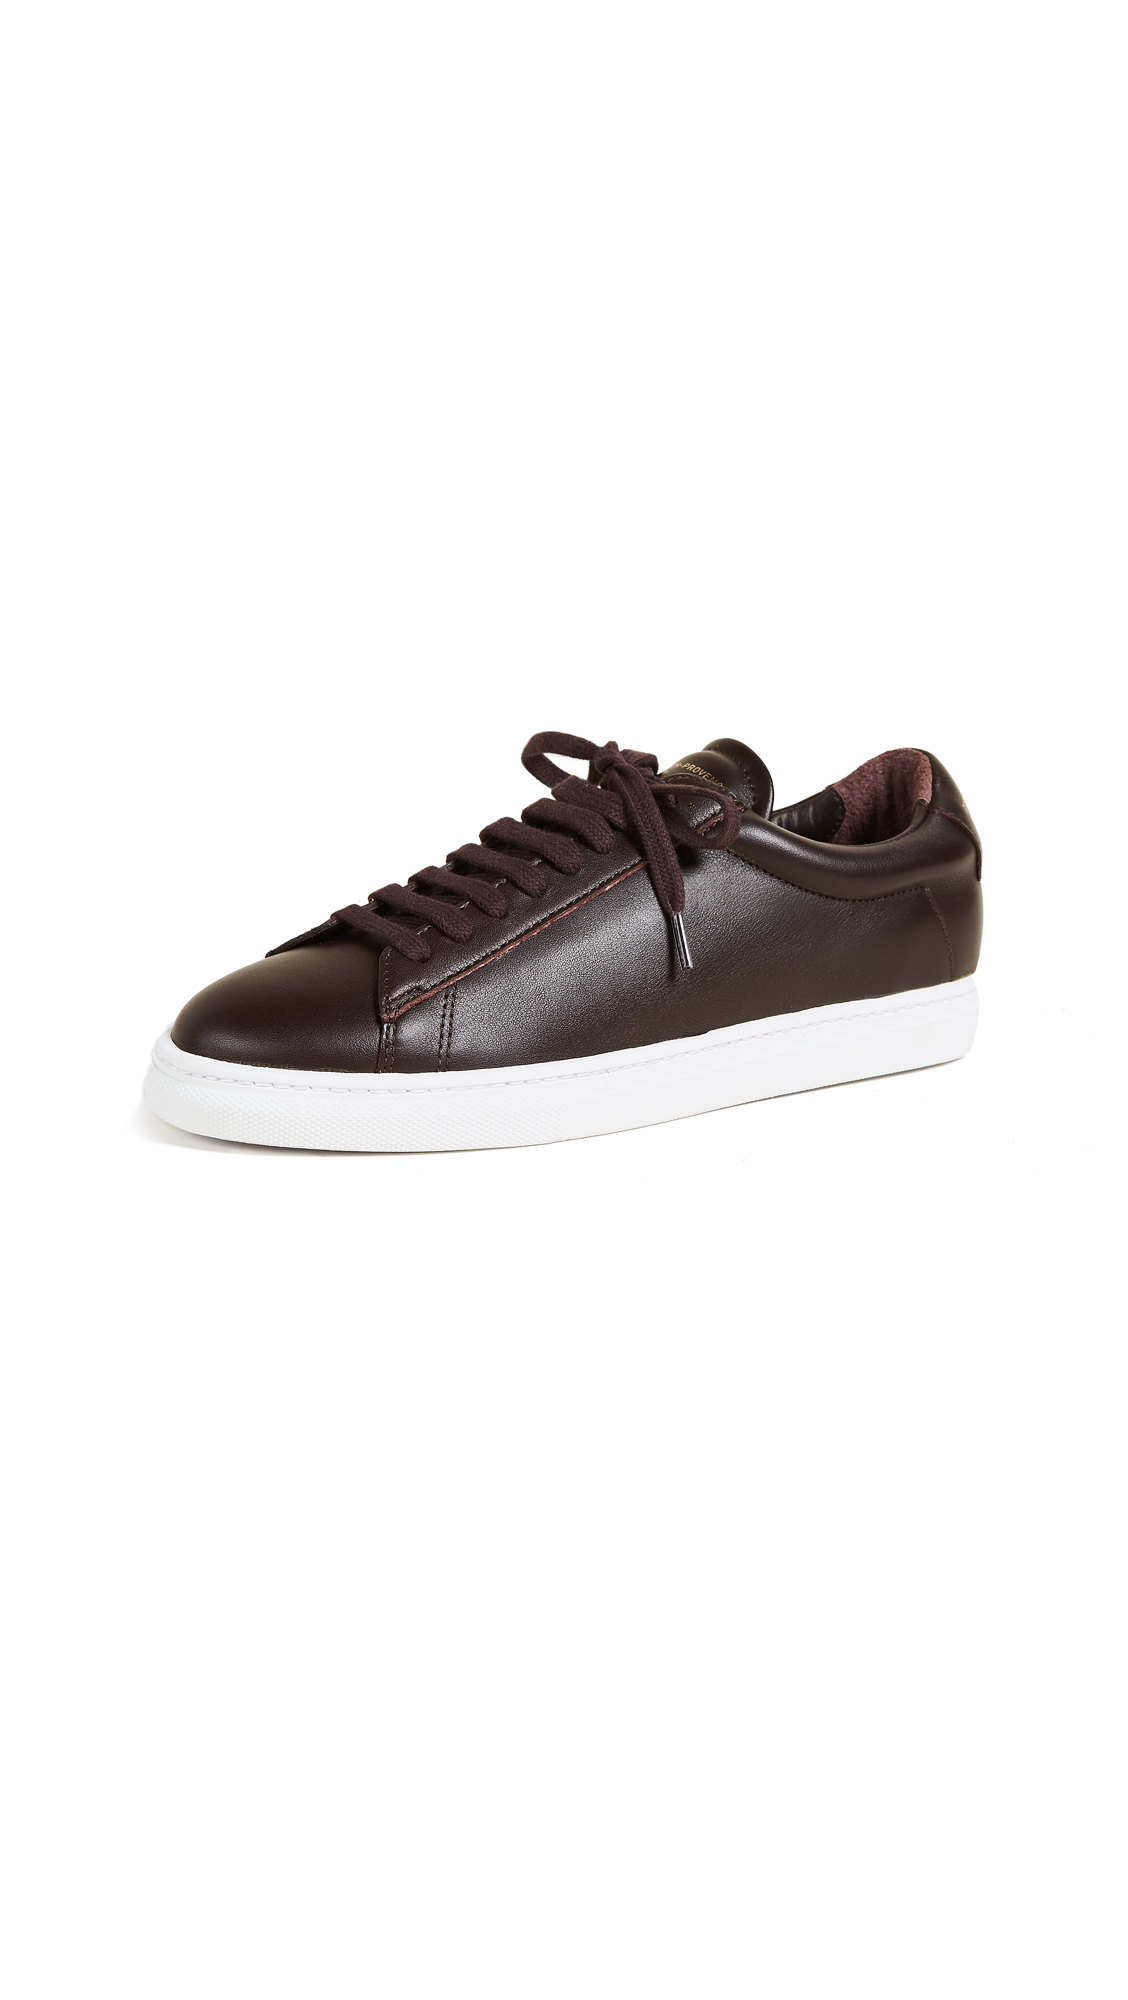 Zespa Leather Sneakers - Bordeaux